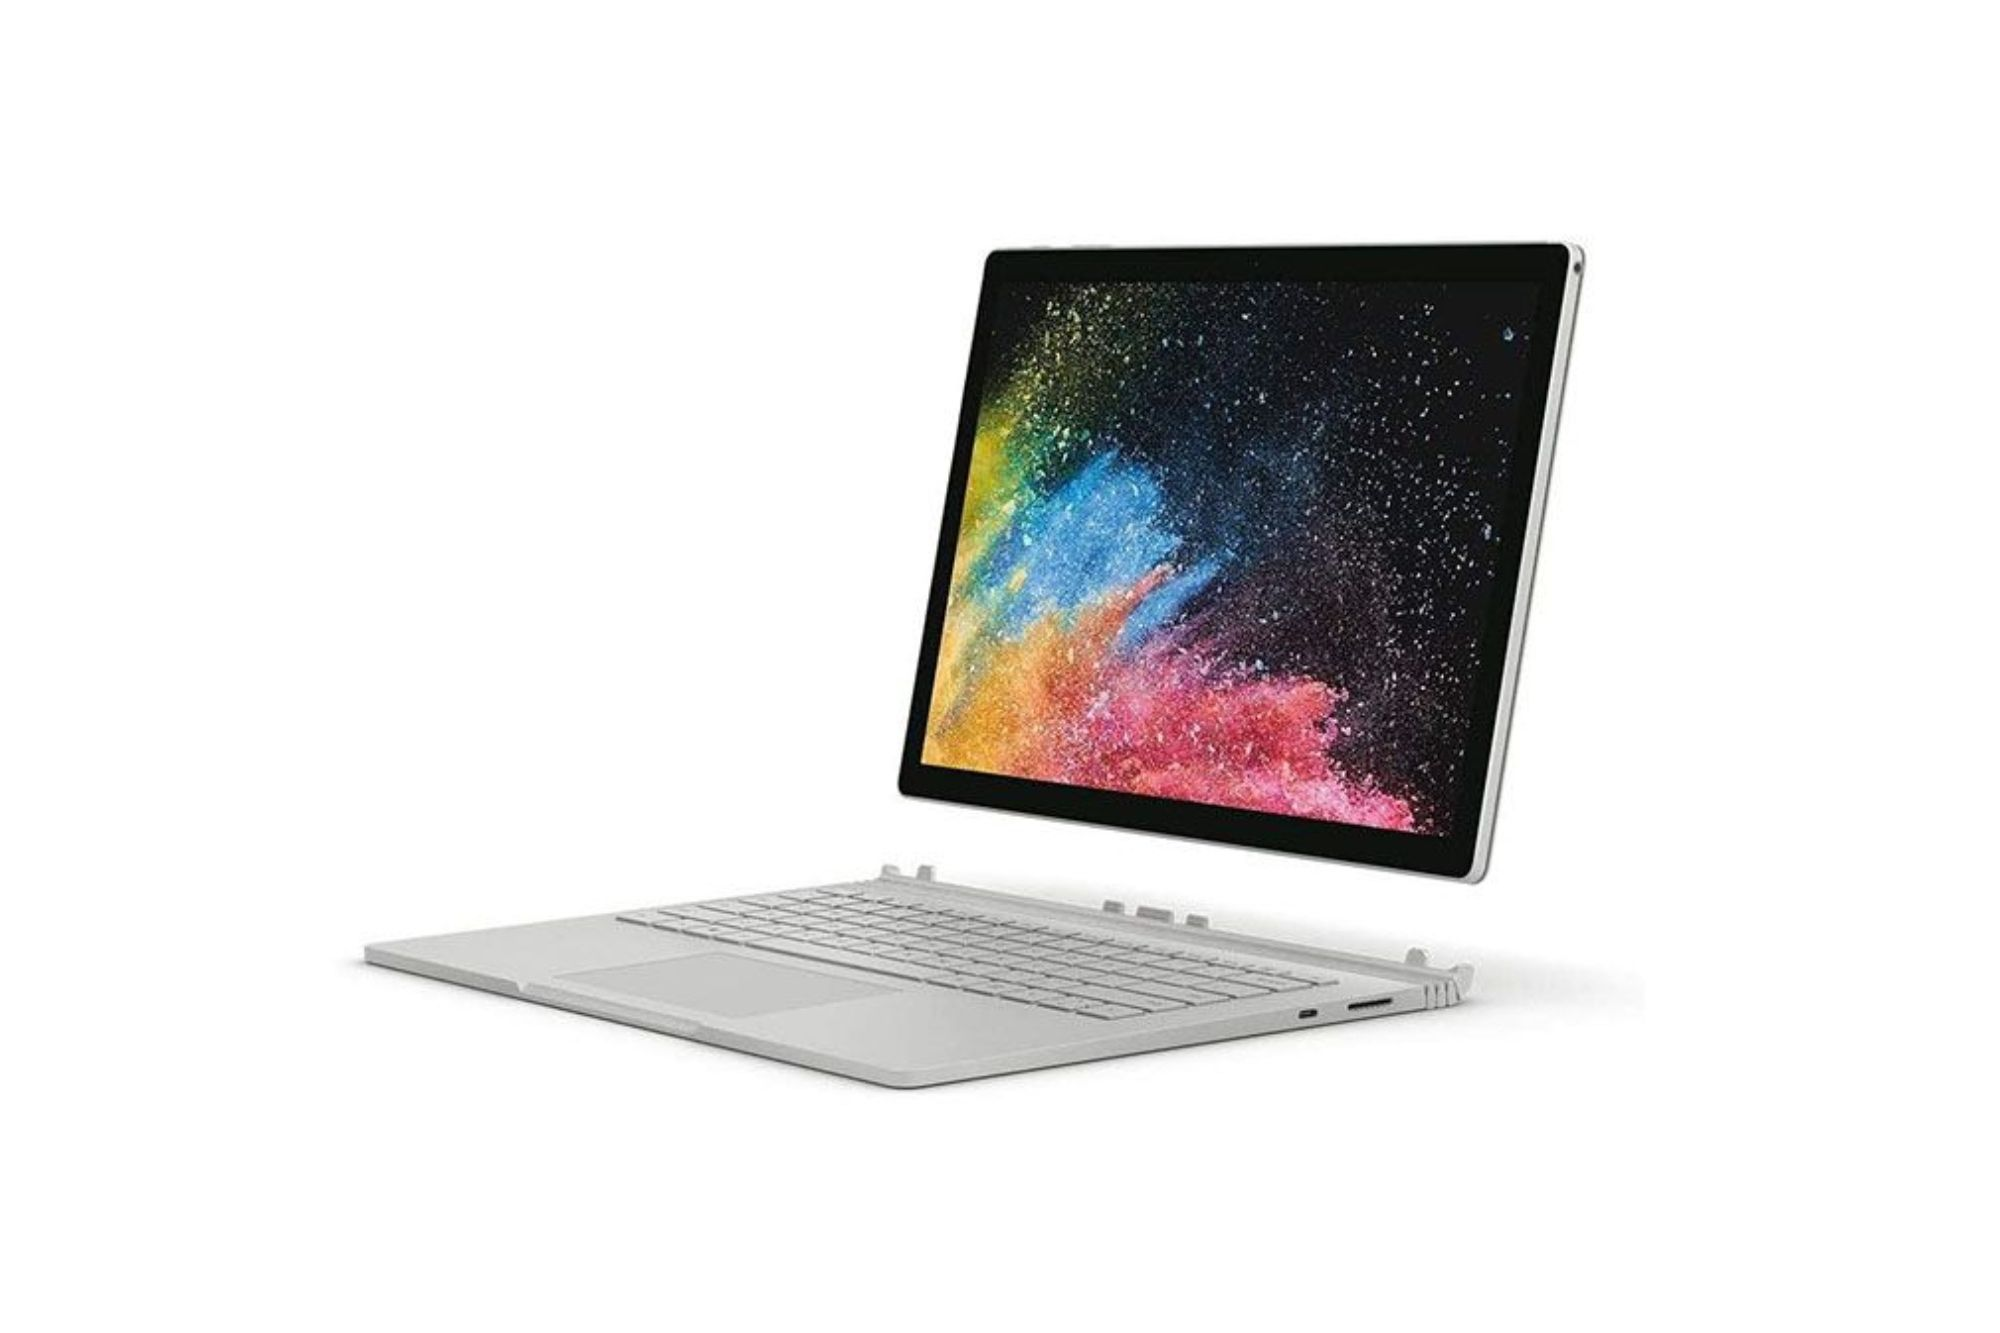 Get a Microsoft Surface For as Low As $499 for All Your On-the-Go Business Needs